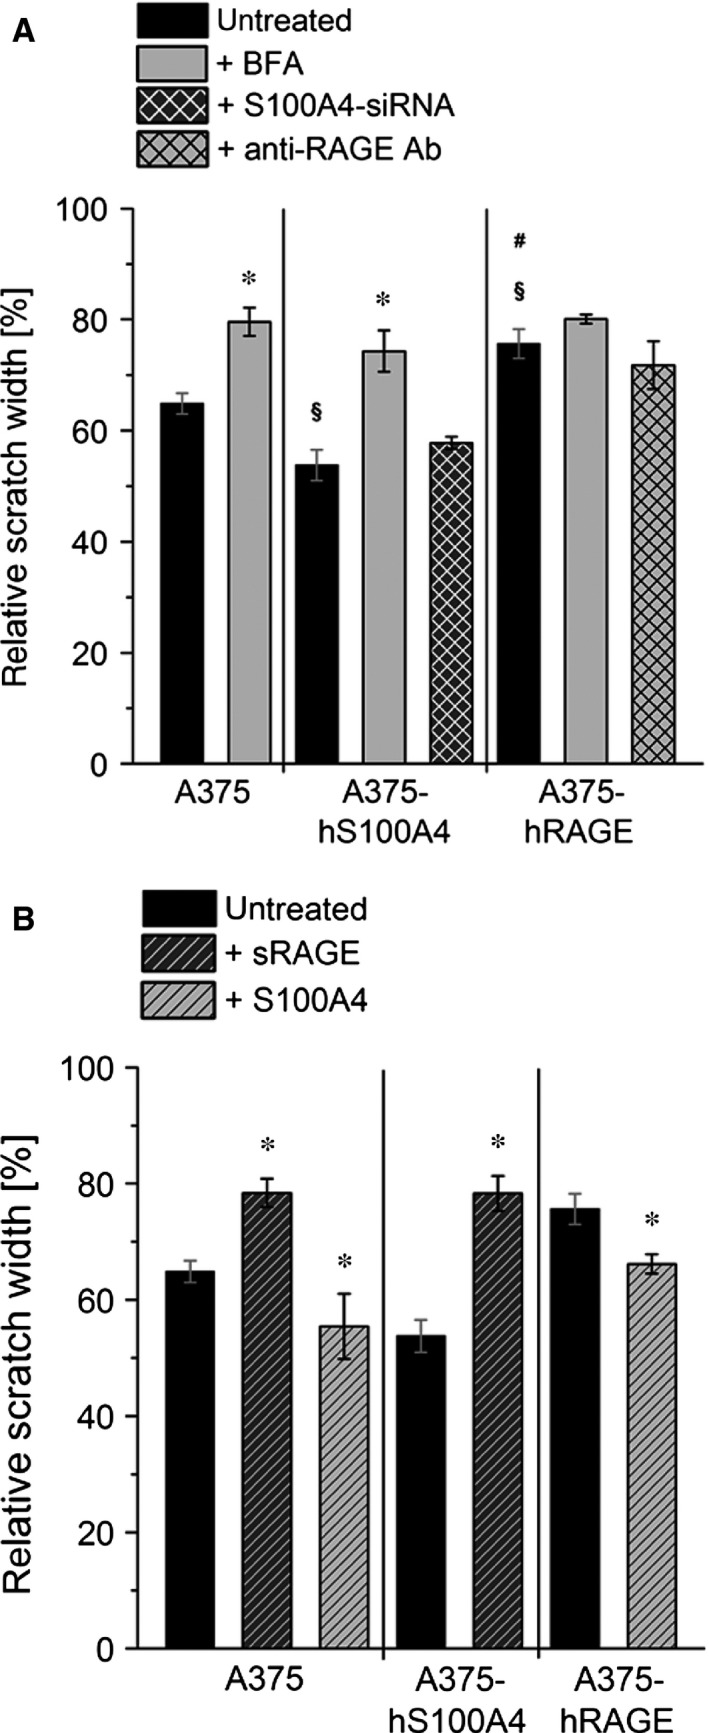 Regulation of cell motility by S100A4‐ RAGE interaction. Relative scratch widths of wild type A375, A375‐hS100A4, and A375‐ hRAGE cells either ( A ) untreated, treated with BFA , S100A4‐si RNA , and blocking Anti‐ RAGE antibody, or ( B ) treated with fivefold molar excess (150 ng/ml) of sRAGE , fivefold (150 ng/ml; in A375 cells) or 100‐fold molar excess (3000 ng/ml) of S100A4 (in A375‐ hRAGE cells) are shown. Initial scratch width was set as 100% (mean ± S.E.M., n ≥ 3, * P